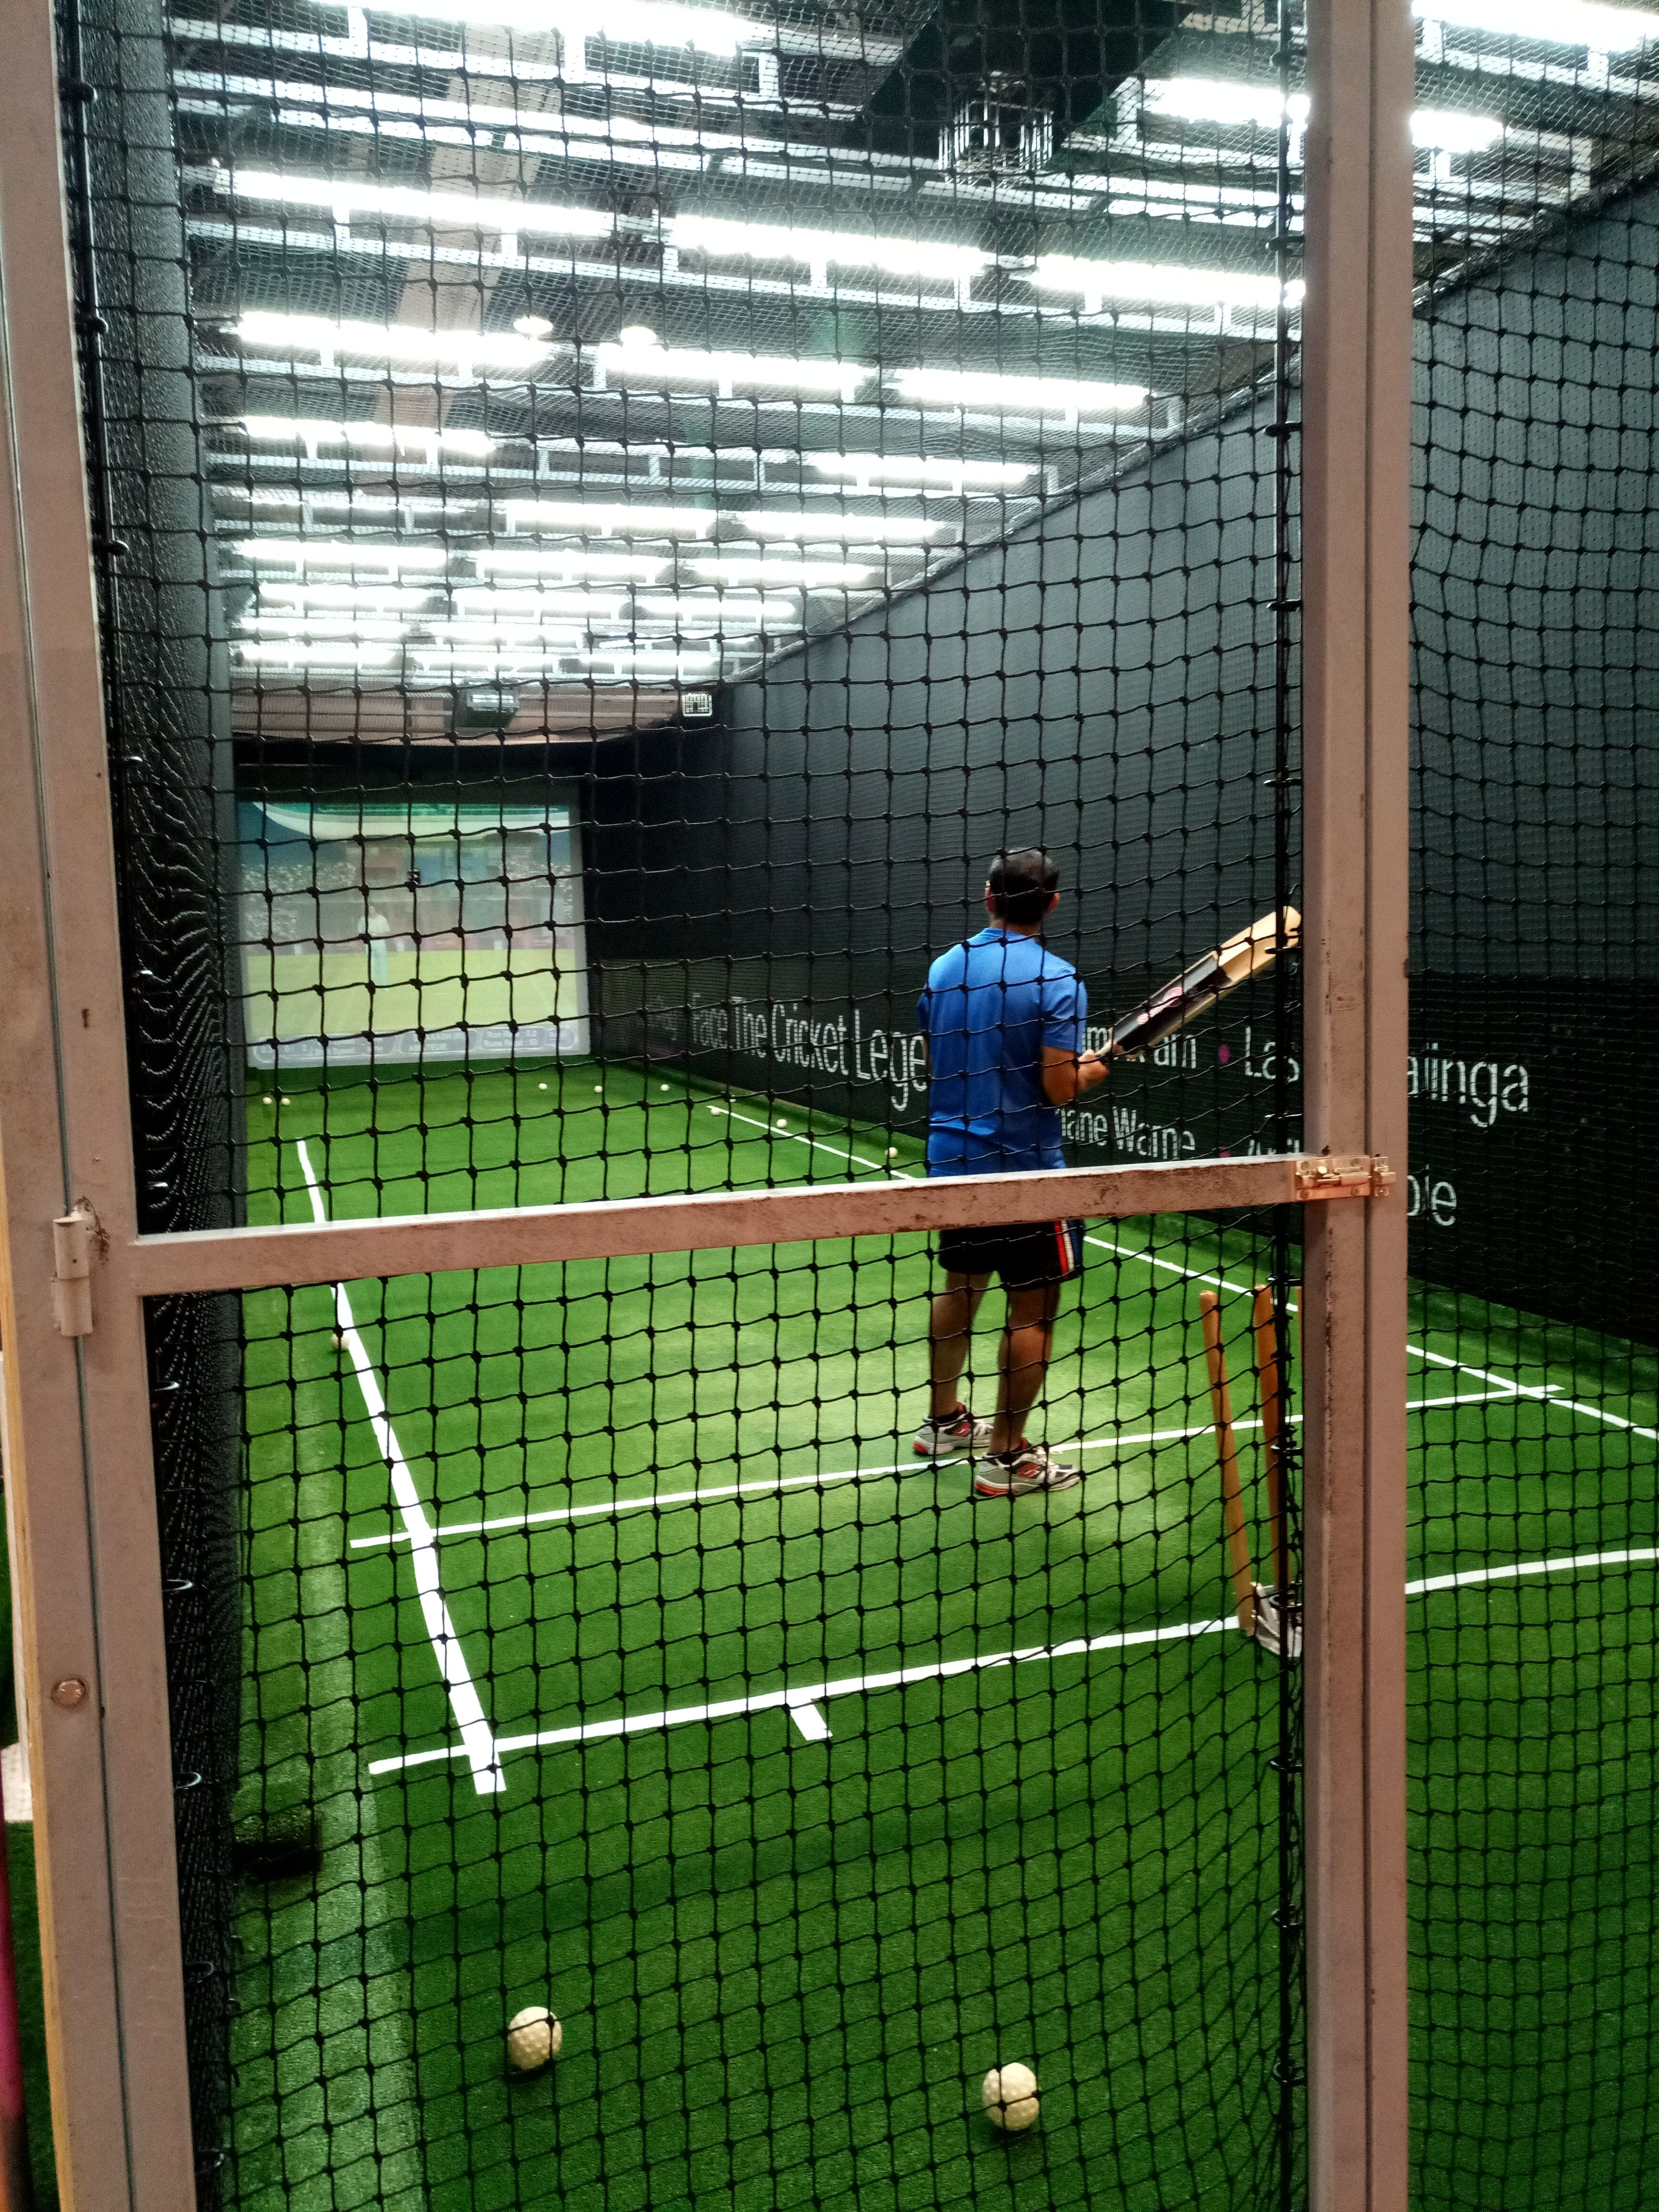 This Giant Area Is Designed For All Kind Of Indoor Sports Dubai Sports World Hosts Numerous Activity Like Indoor Sports Shopping Mall Design Sports Complex